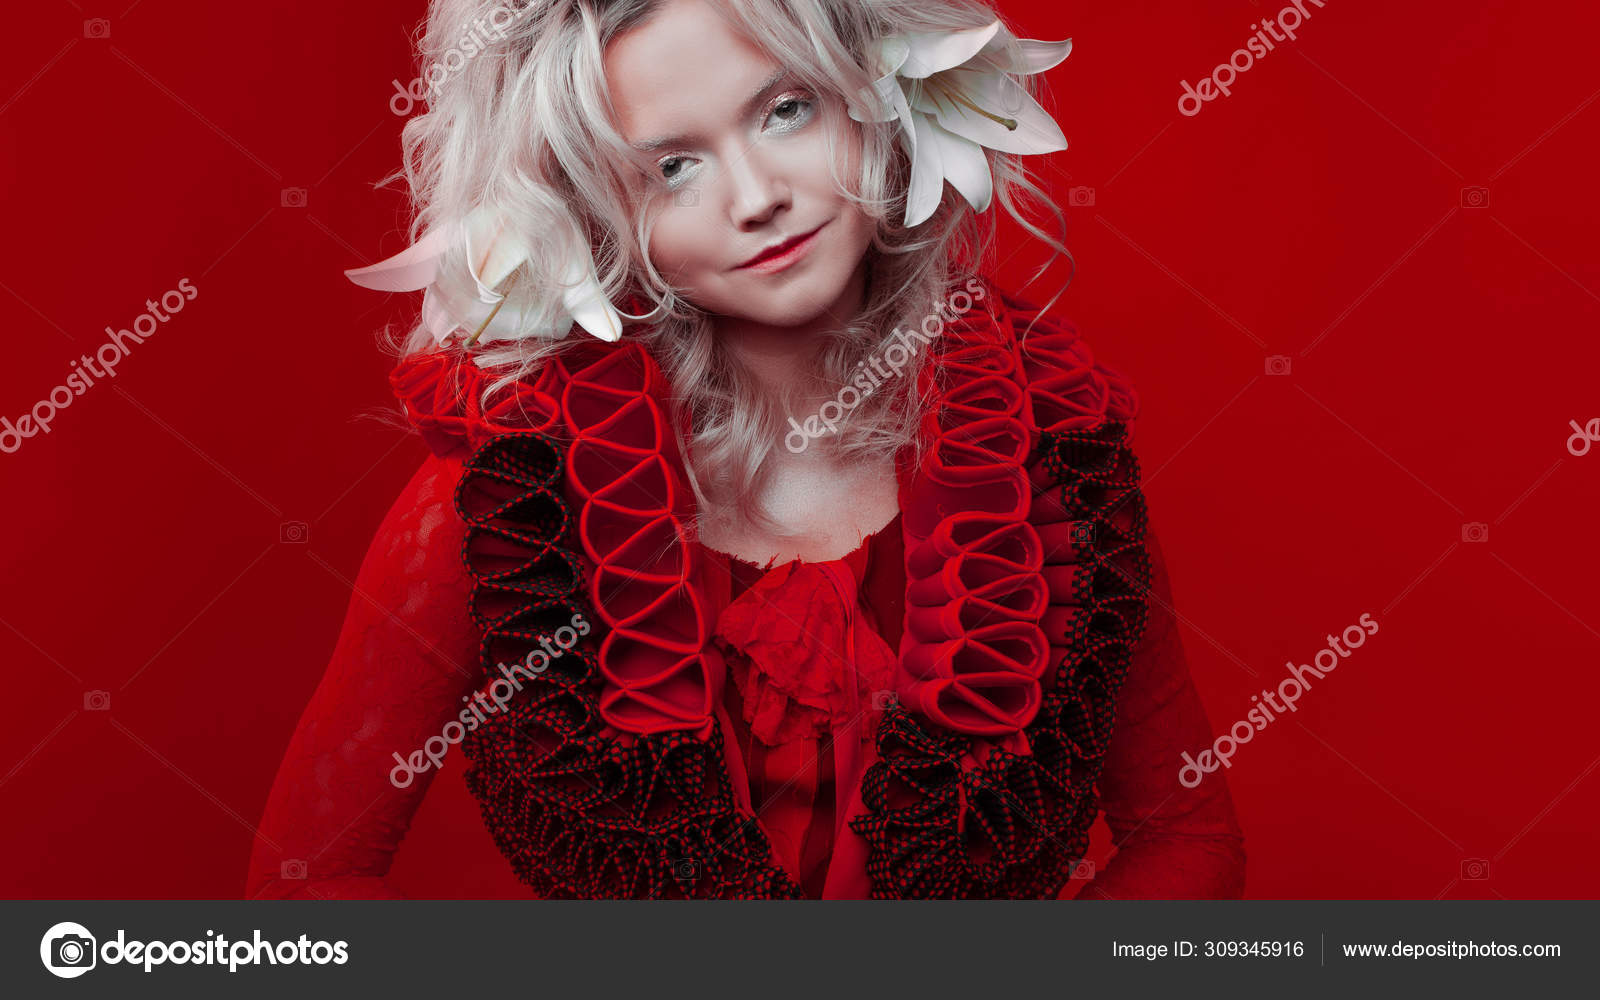 Shades Of Red Portrait Of A Bizarre Attractive Blond Woman With Fashion Makeup In Red Fantasy Outfit Zigzag Collar Stock Photo C Kriscole 309345916